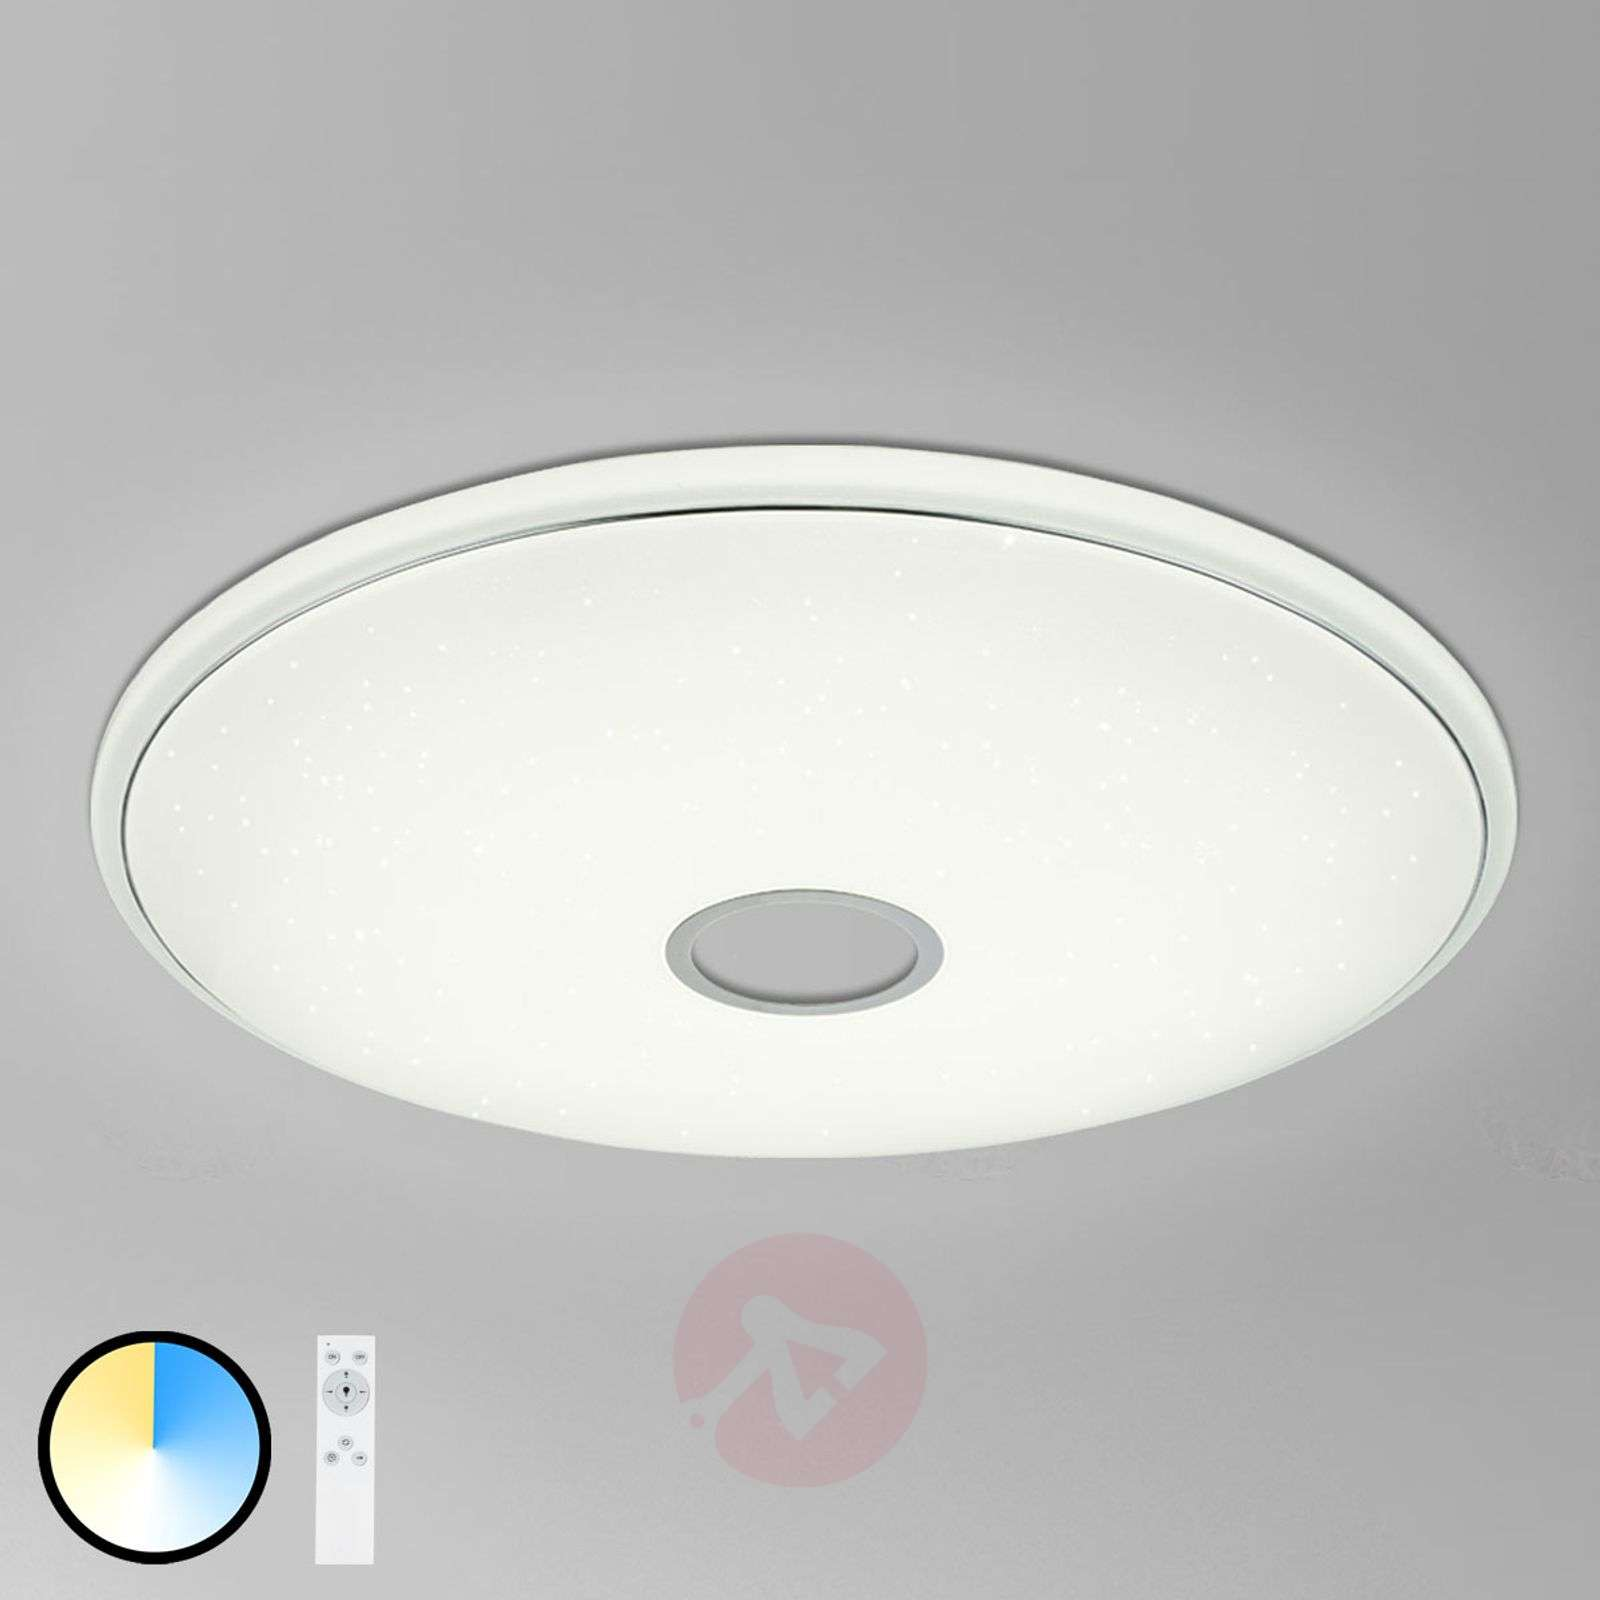 Lampa sufitowa LED Connor z pilotem